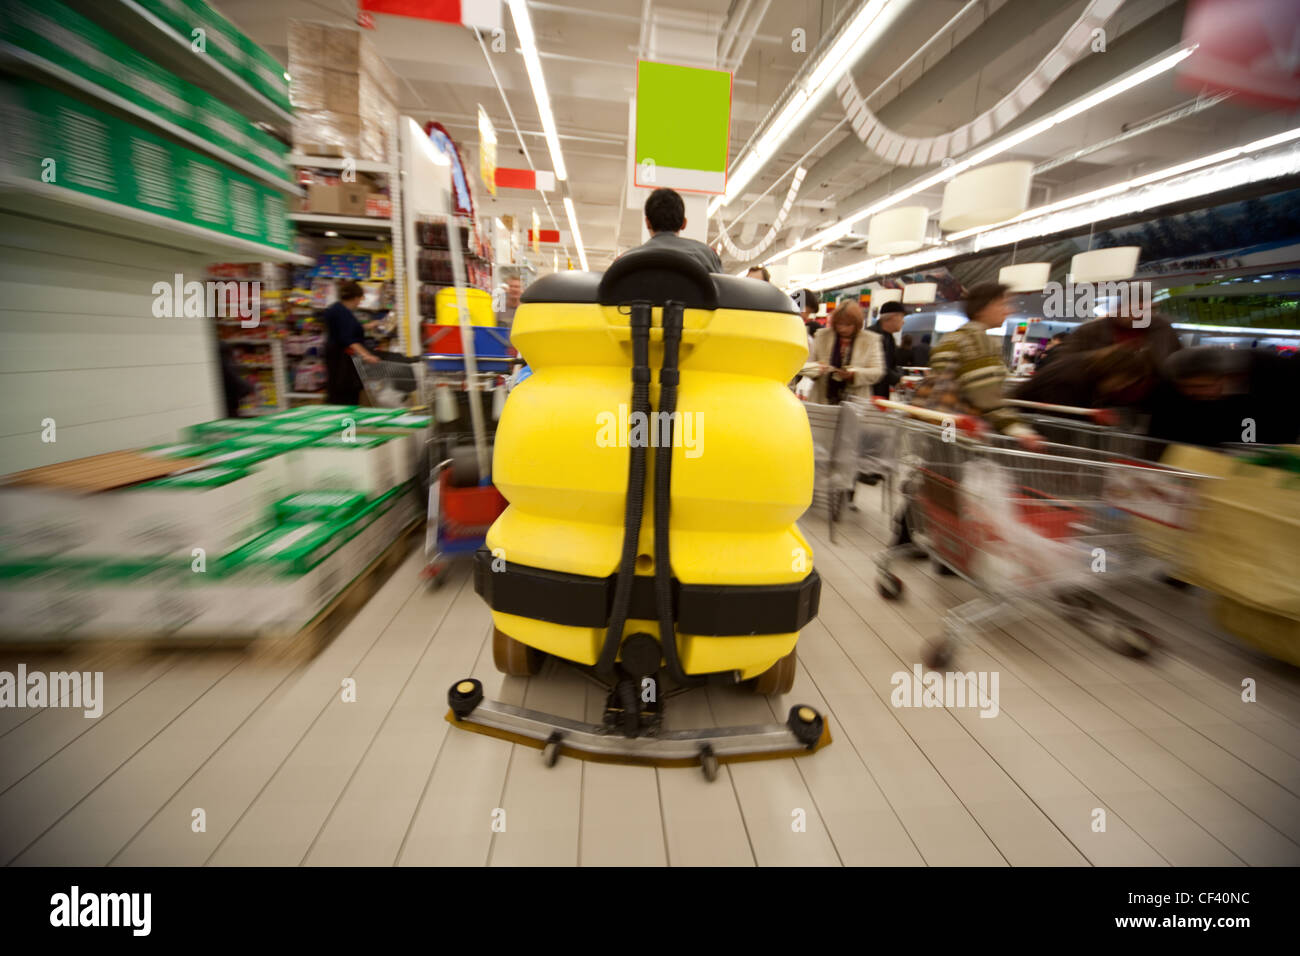 Motion blur of yellow clean machine in centre of trading floor in supermarket - Stock Image